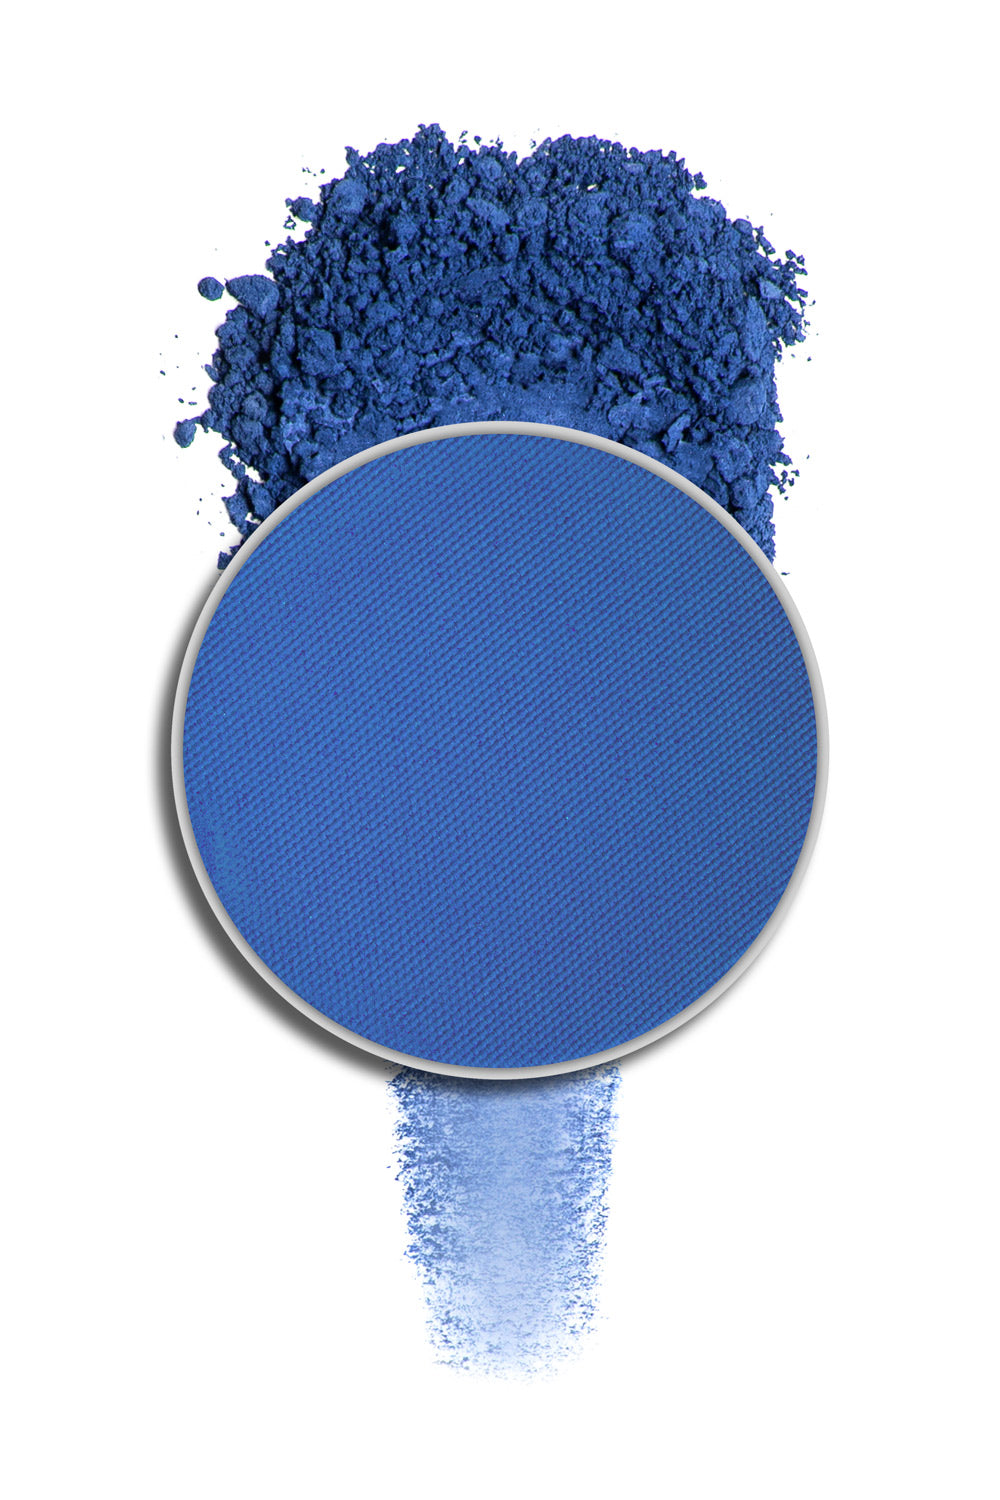 Tropical Blue - Eyeshadow Pan